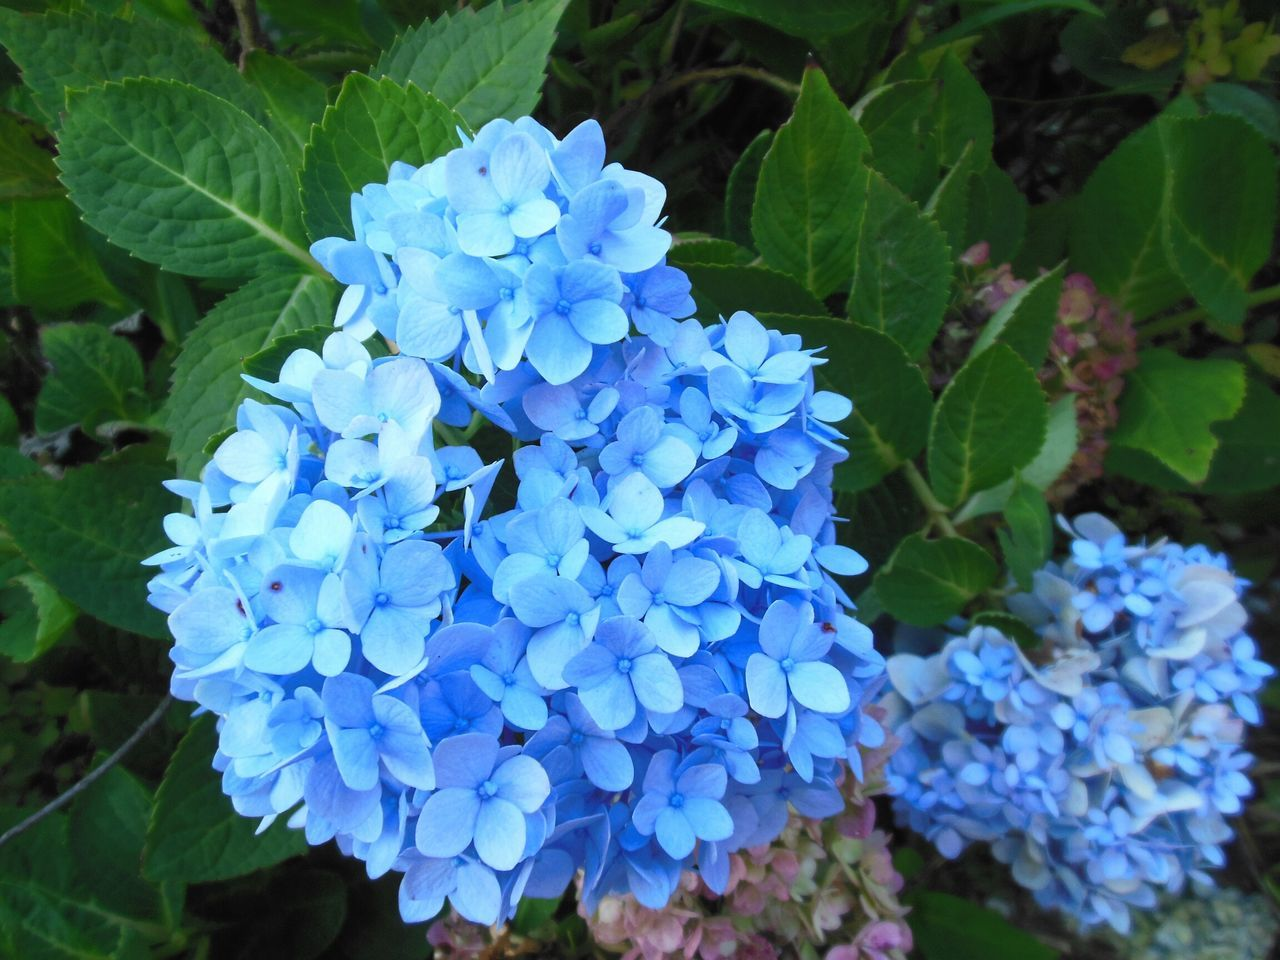 flower, beauty in nature, blue, growth, fragility, nature, hydrangea, plant, freshness, petal, flower head, outdoors, day, blooming, leaf, green color, no people, lilac, close-up, lantana camara